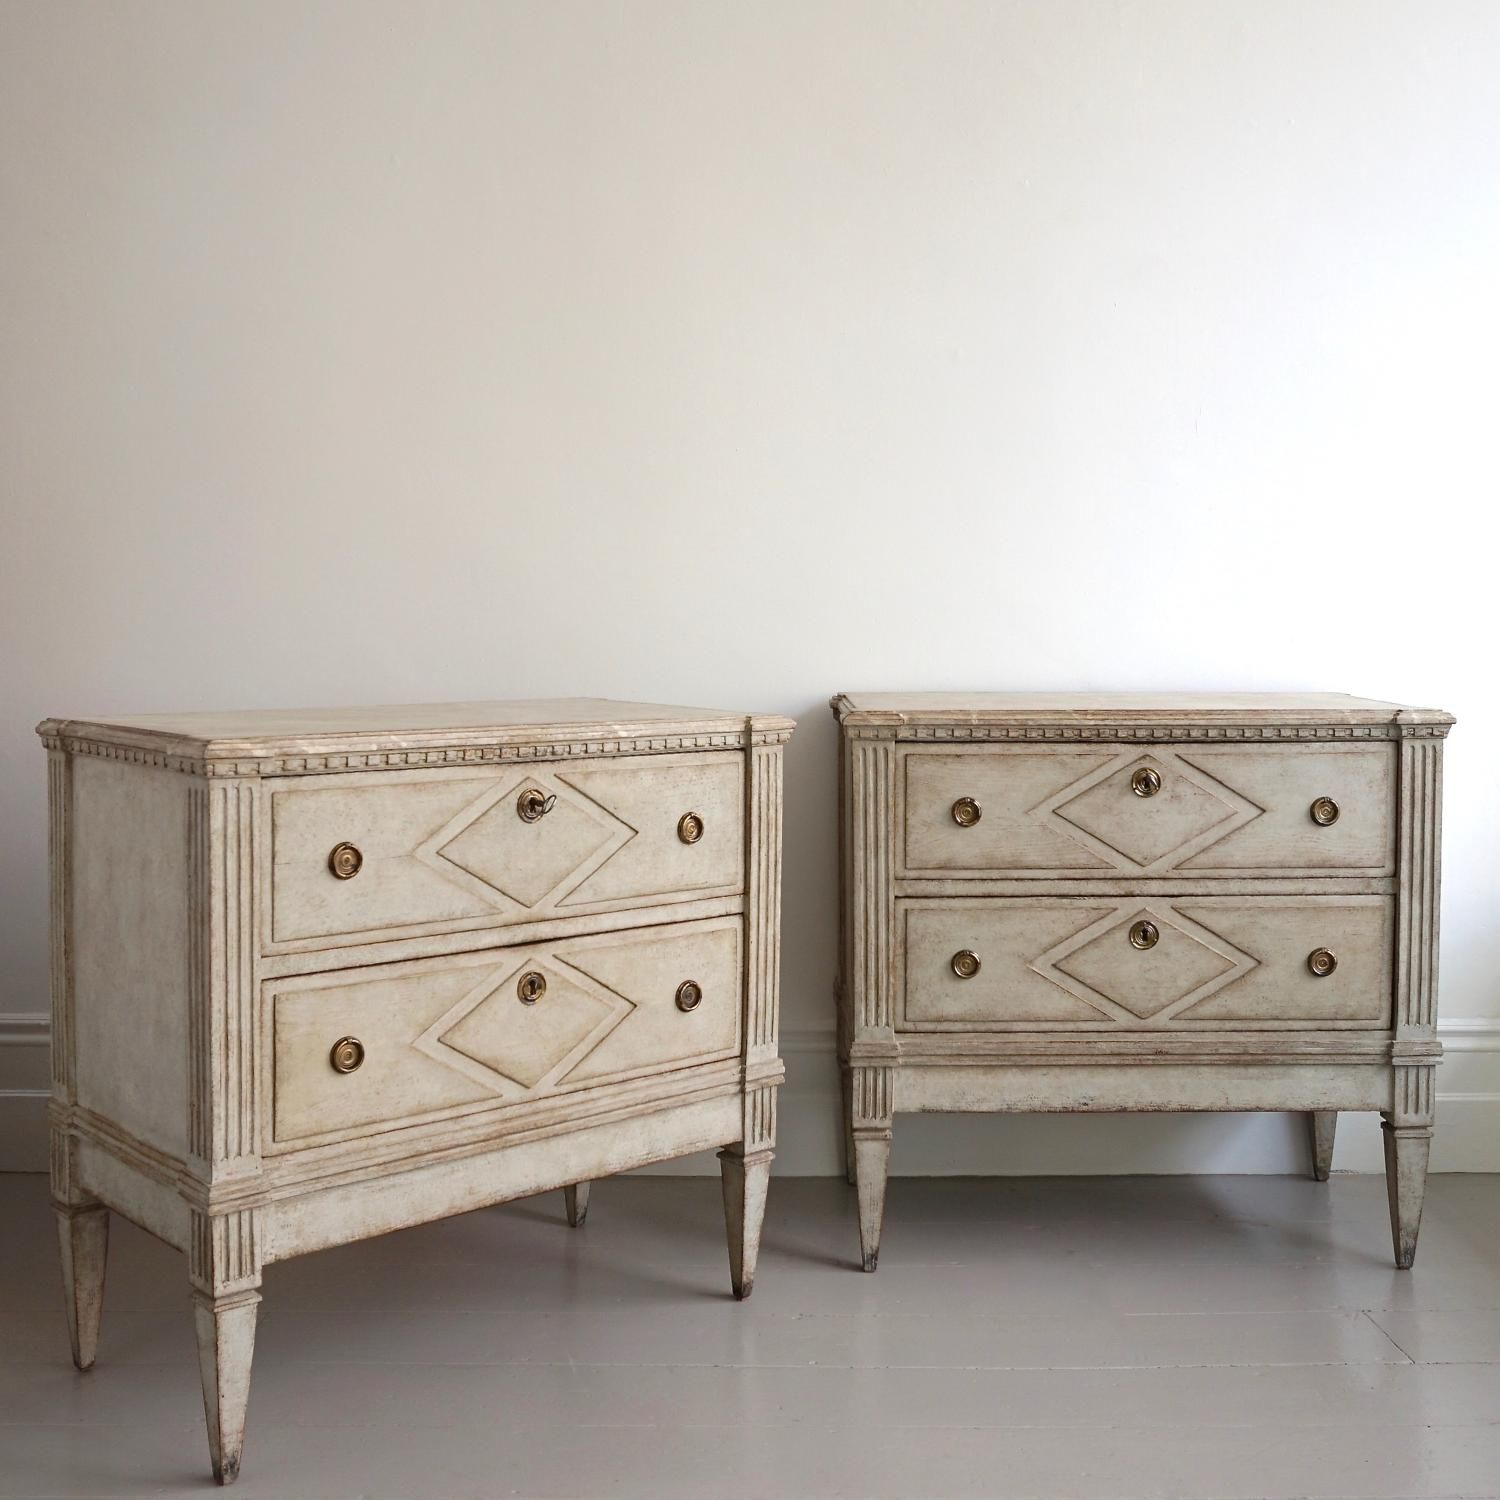 PAIR OF SWEDISH GUSTAVIAN BEDSIDE CHESTS In FURNITURE